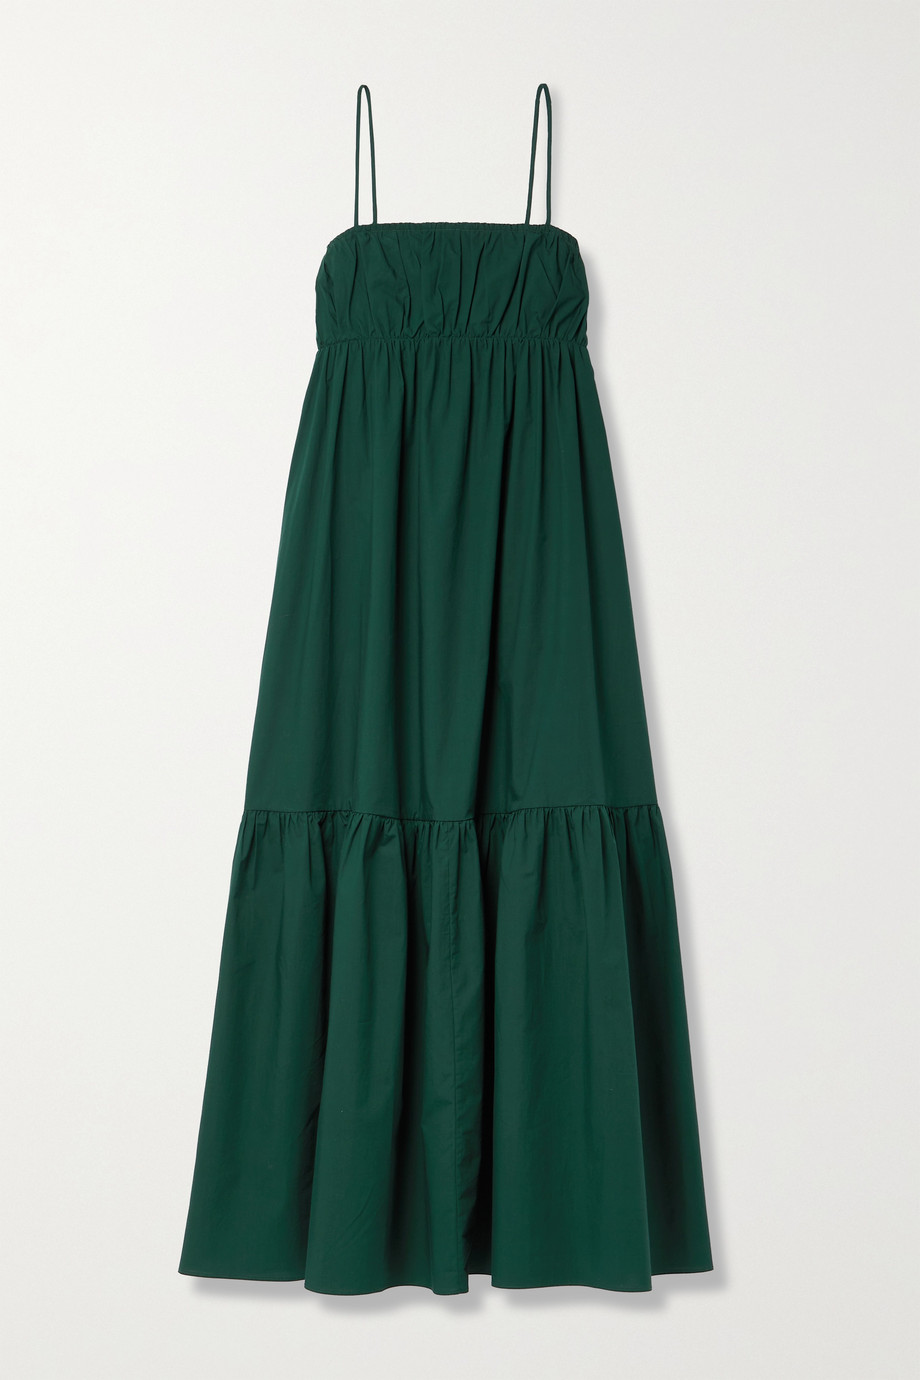 BY MALENE BIRGER Disemma gathered tiered cotton-poplin maxi dress